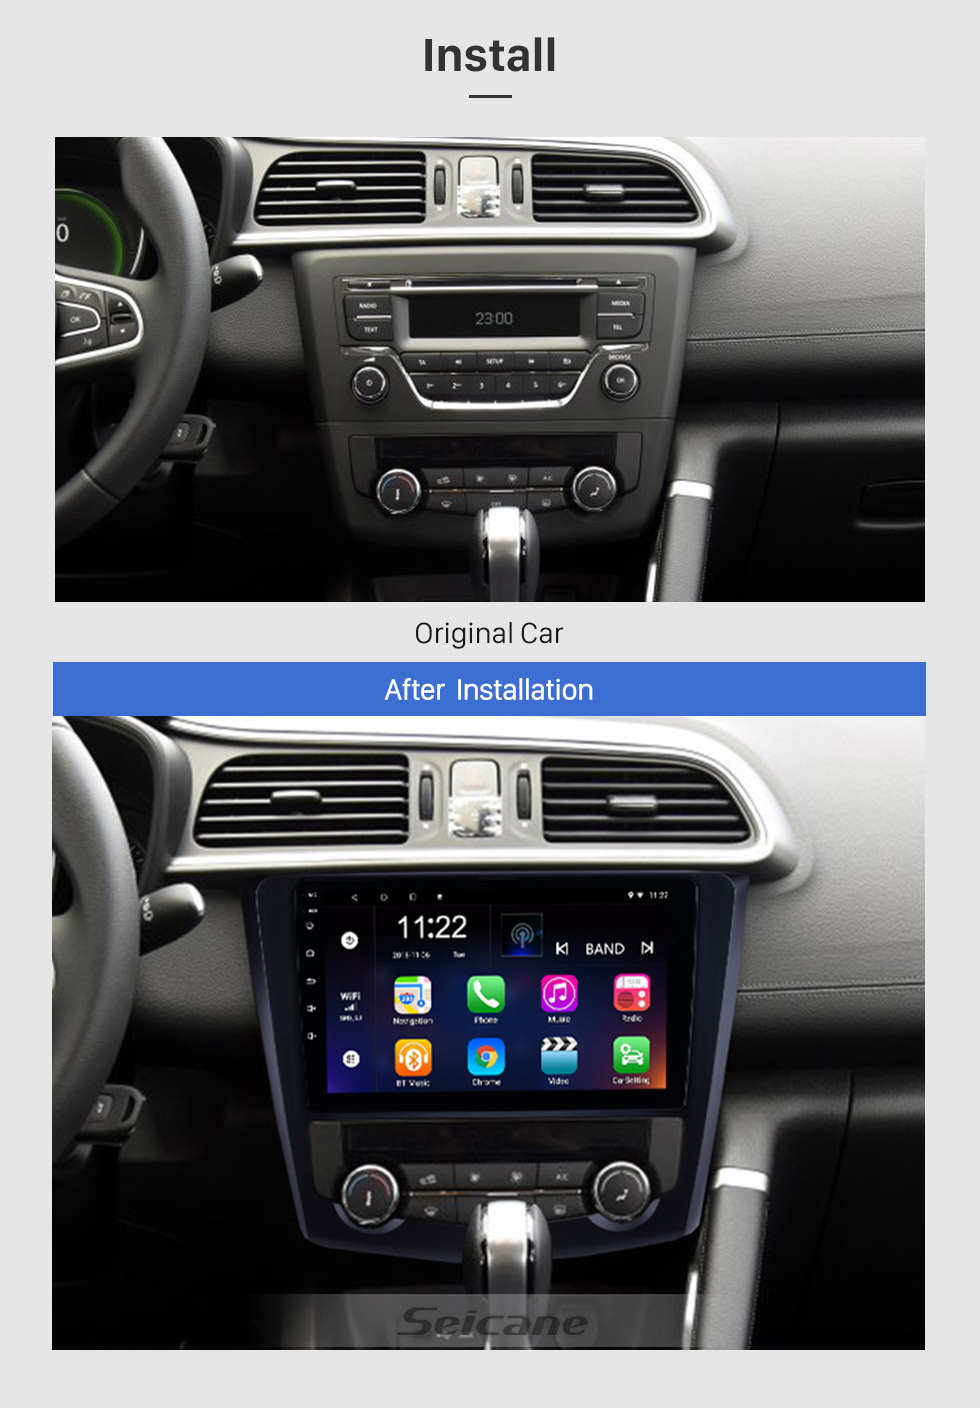 Seicane 9 inch 2016 2017 Renault Kadjar Android 10.0 HD Touchscreen Auto radio GPS Navigation Bluetooth Car Stereo TV Tuner Rearview Camera AUX IPOD MP3